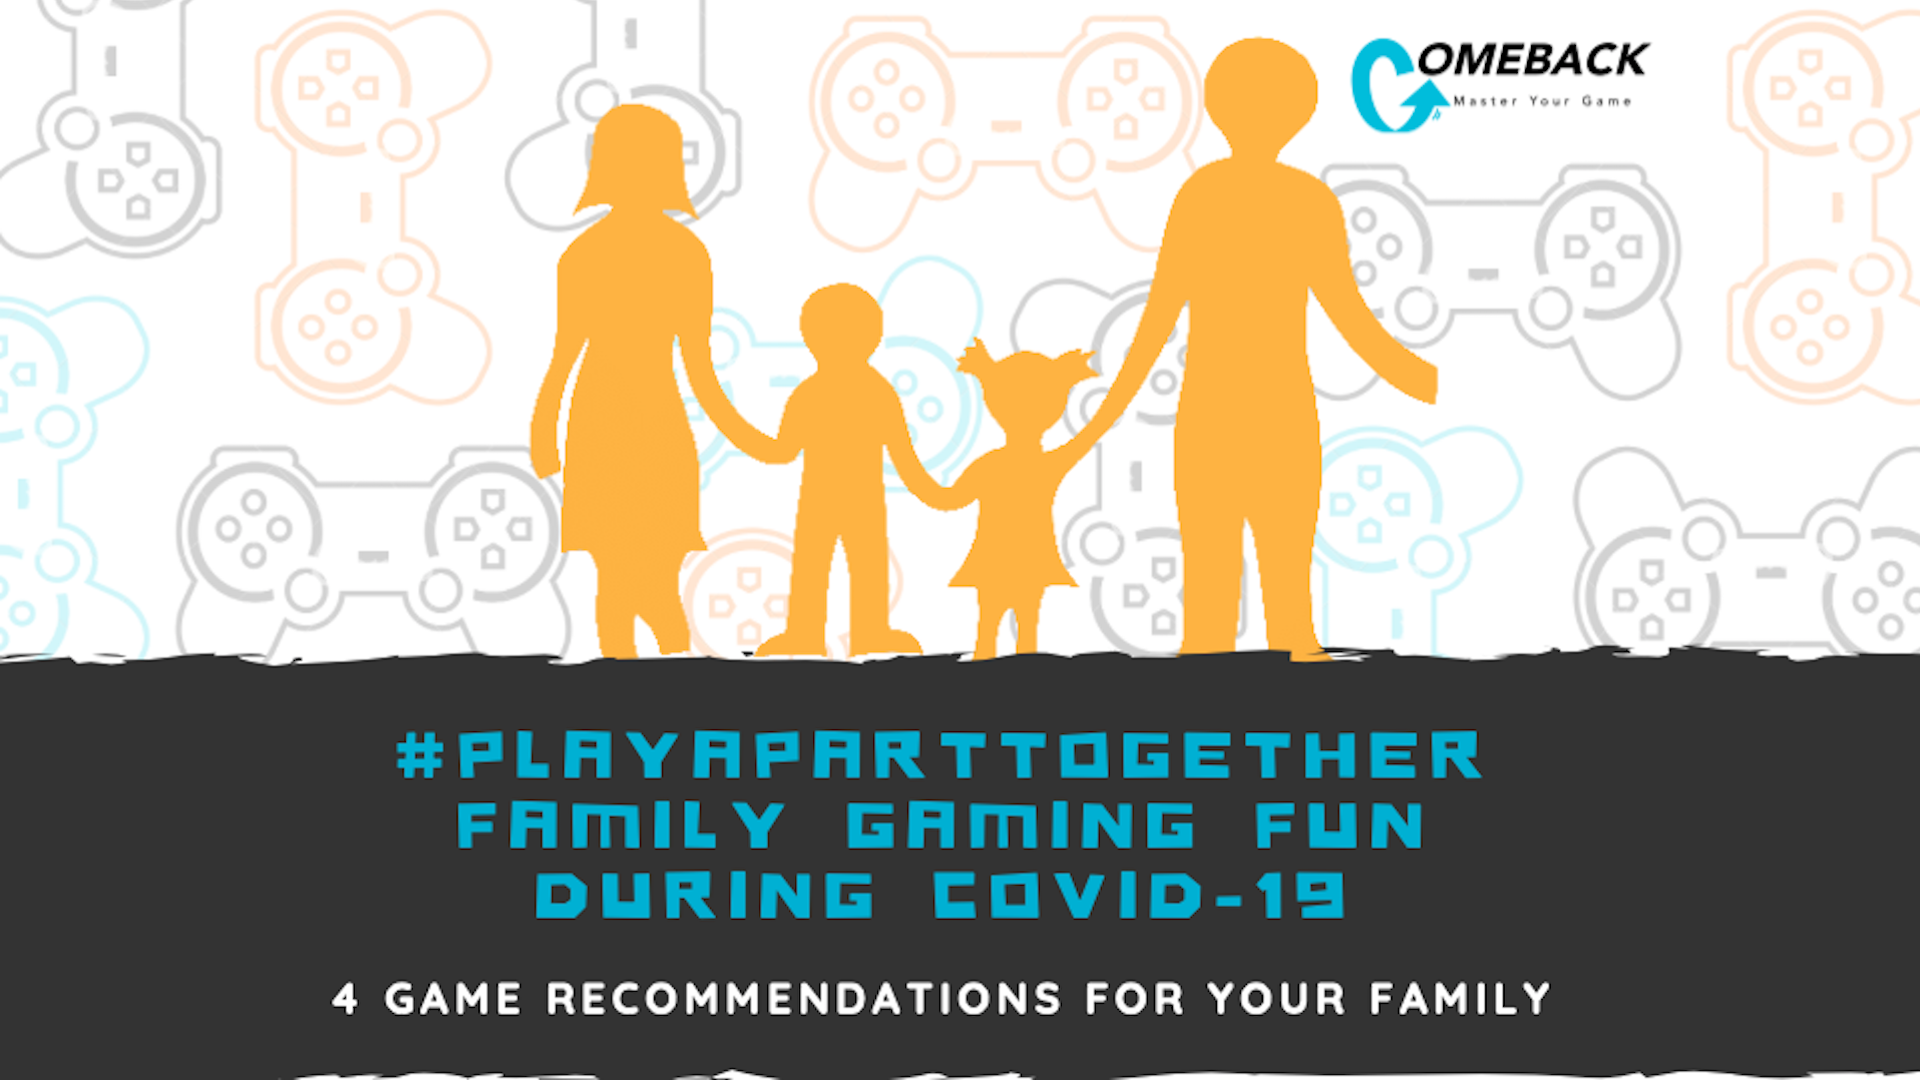 PlayApartTogether Family Gaming Fun During COVID-19